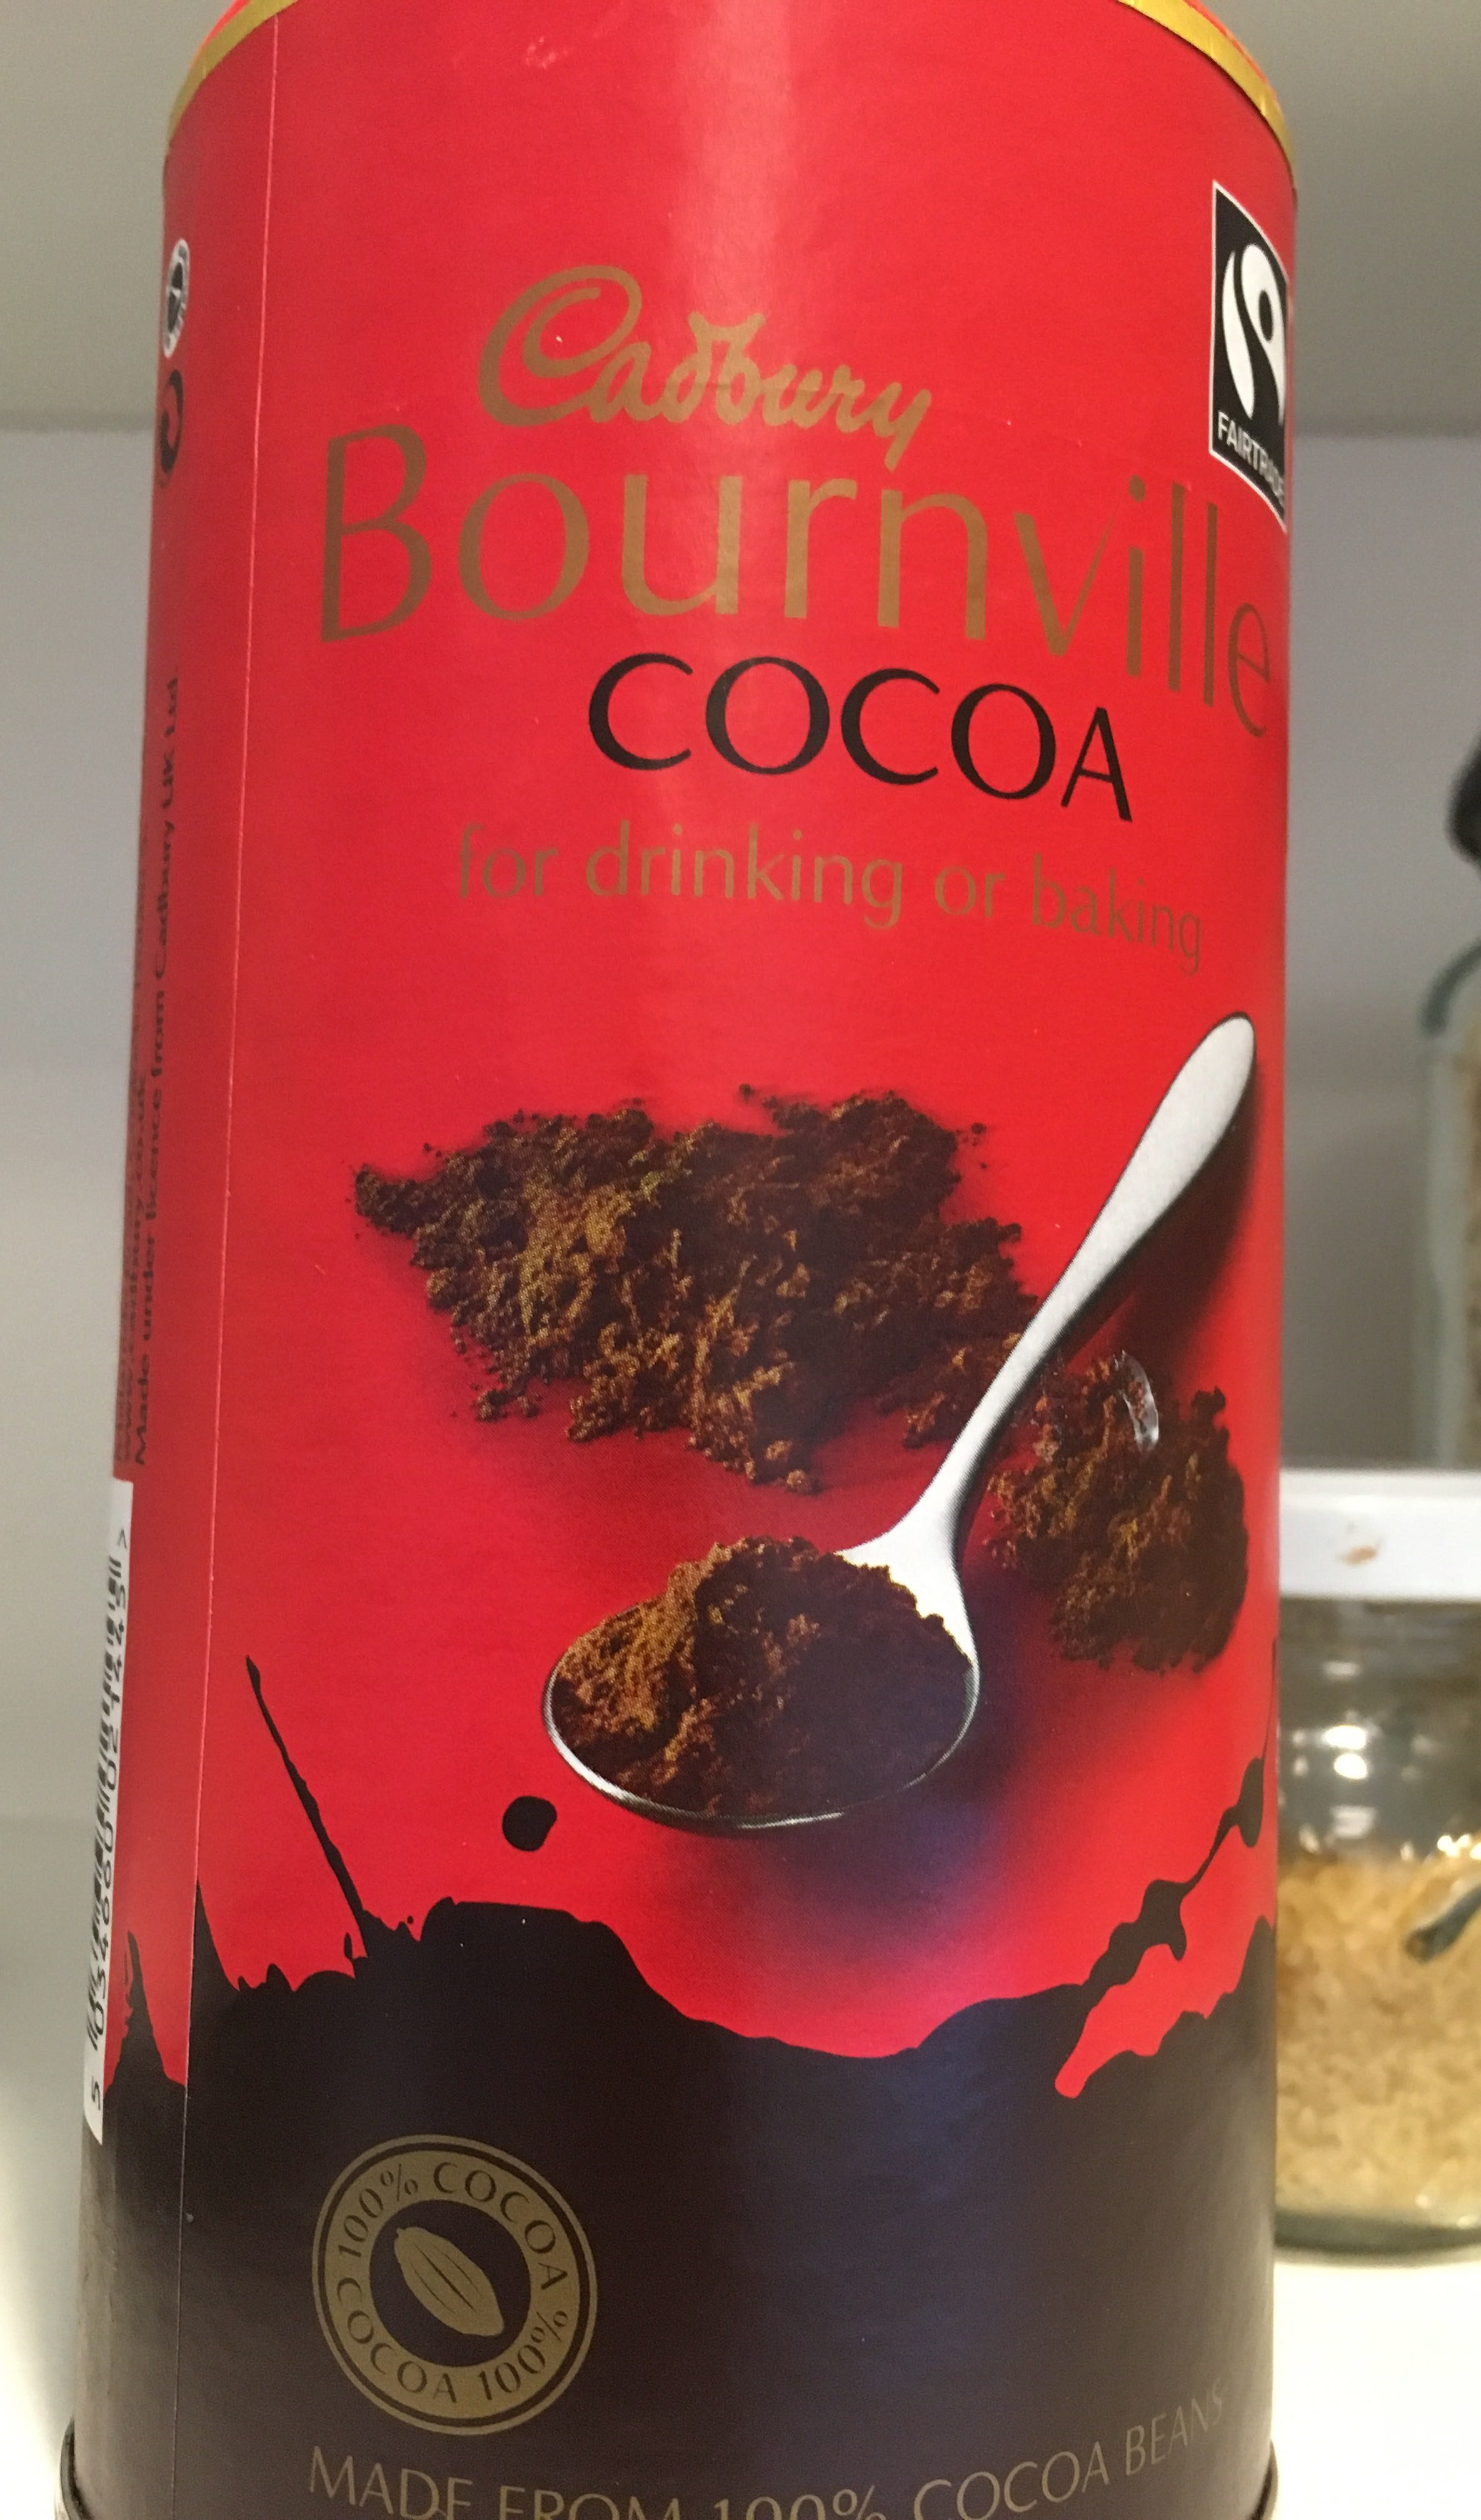 Bournville Cocoa for Drinking or Baking - Produit